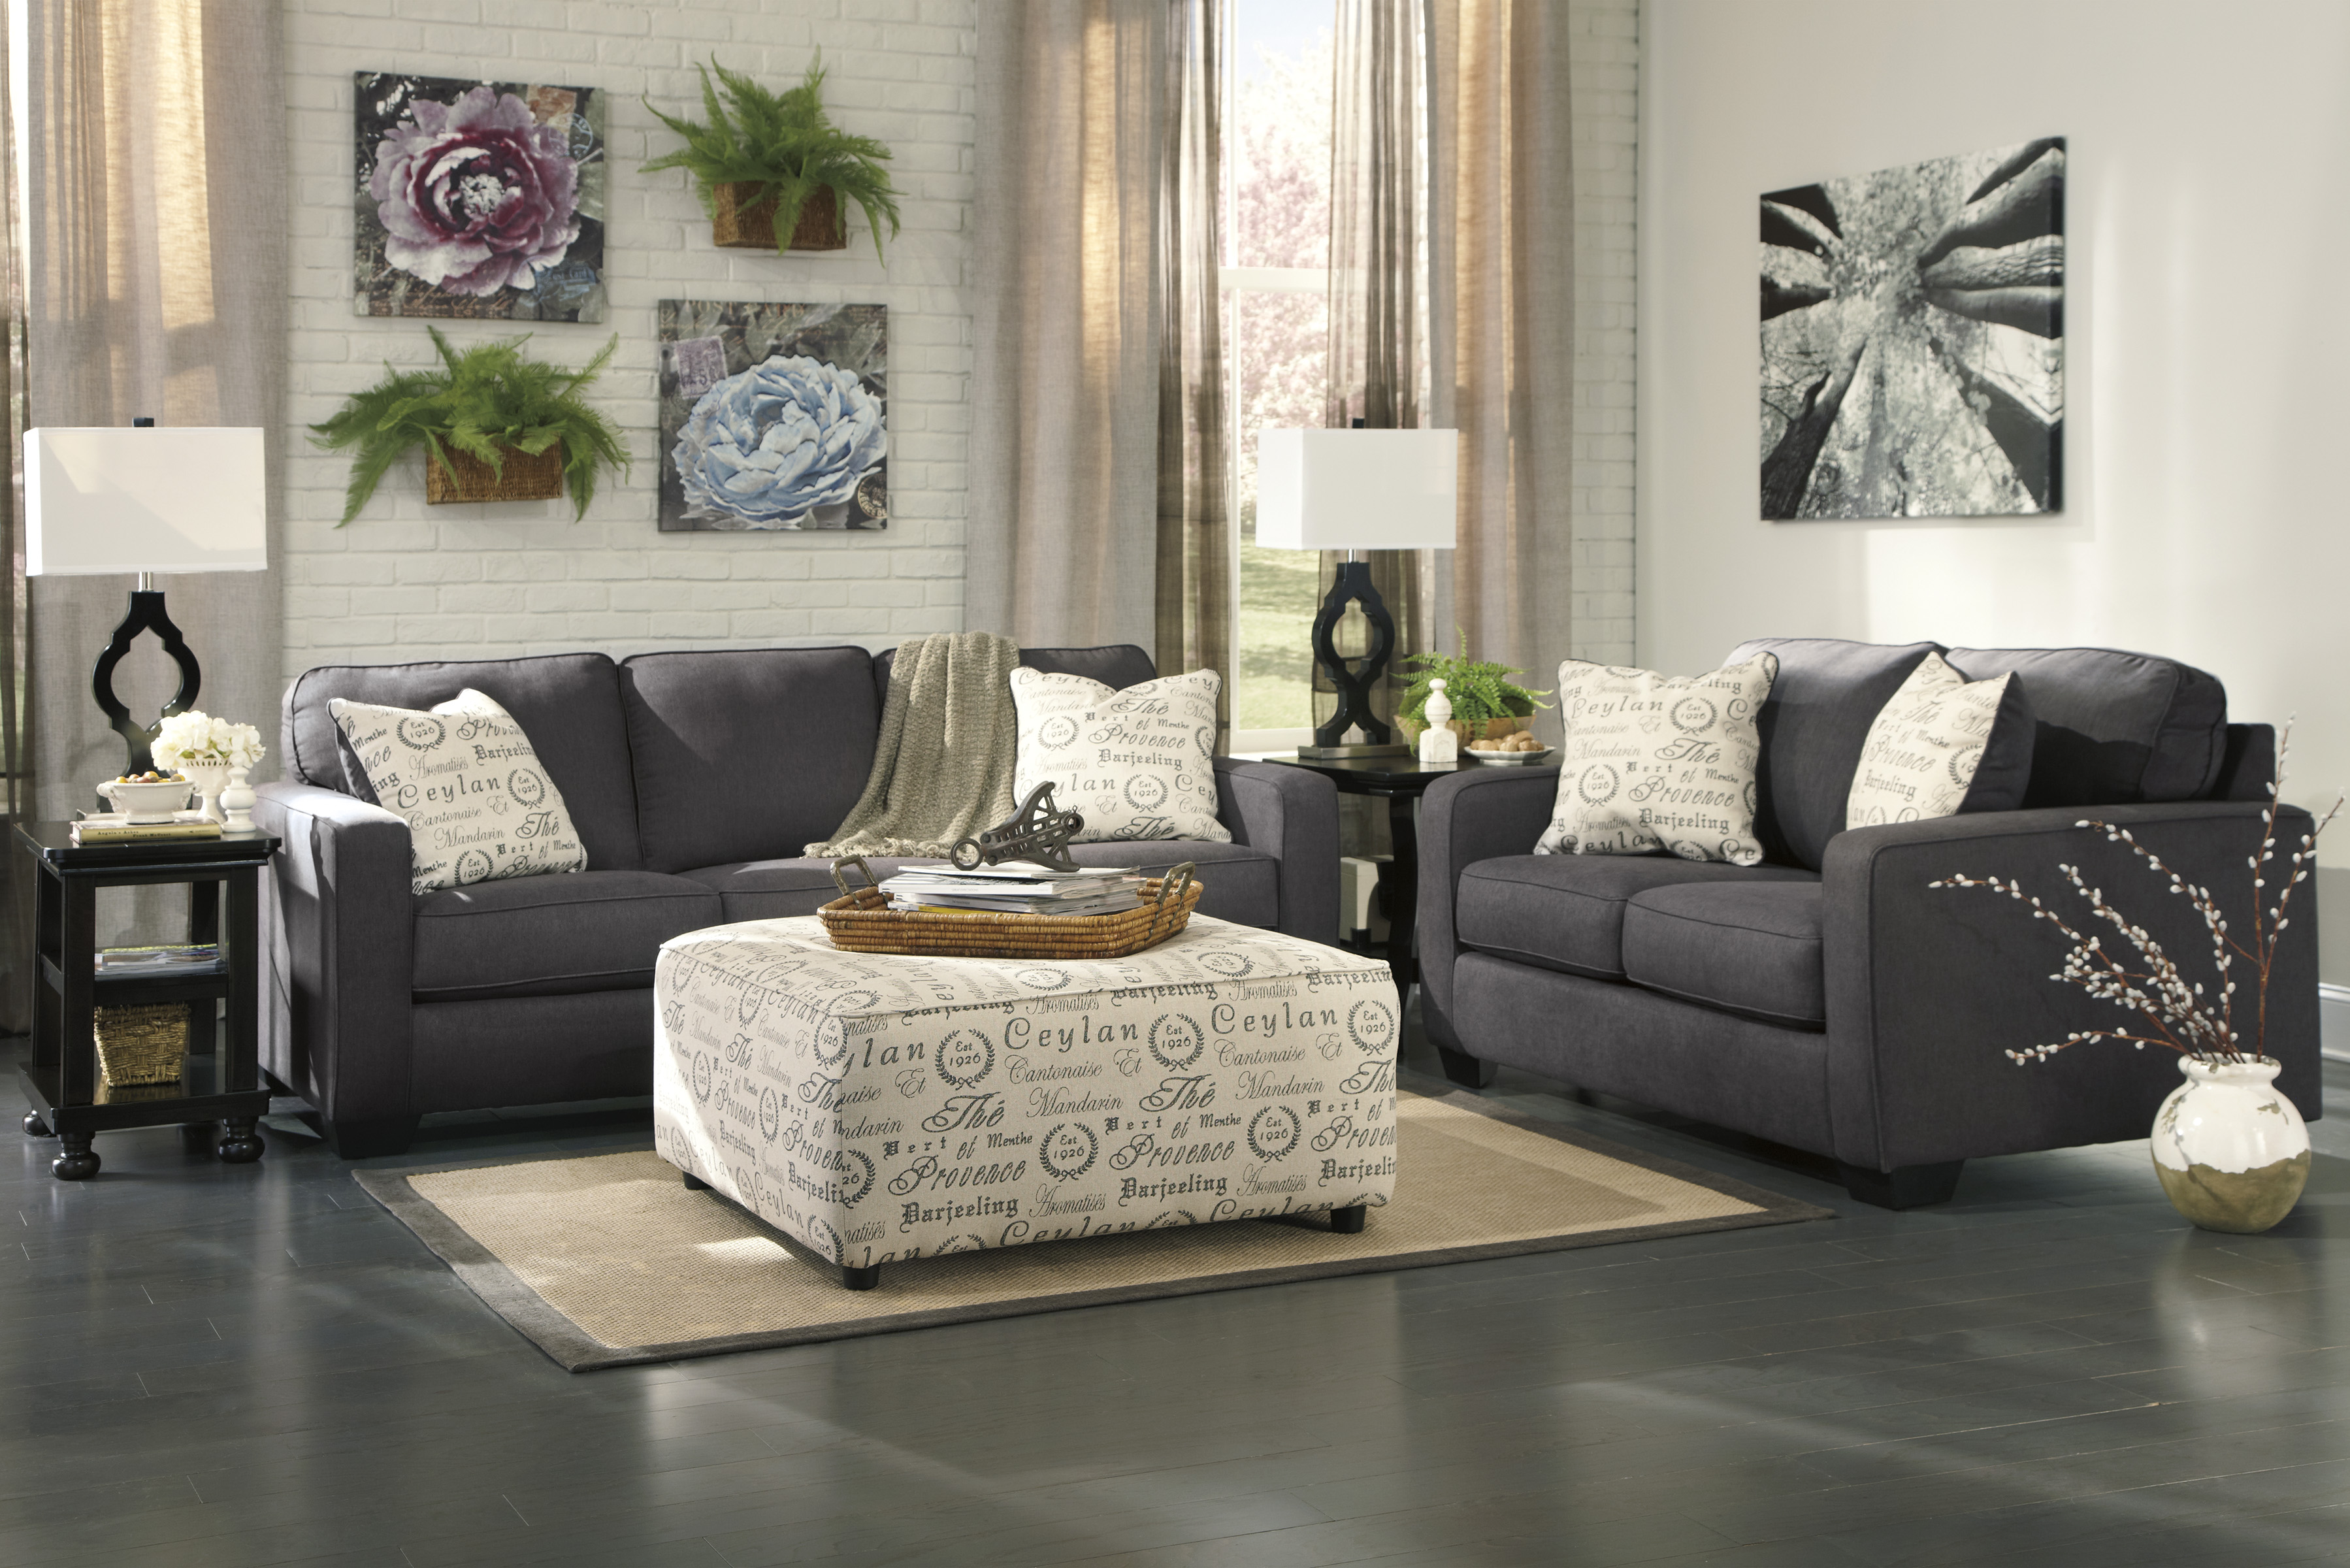 Save Big On Sofas Living Room Sets And Sectionals From Your Local Home Decor Furniture Store